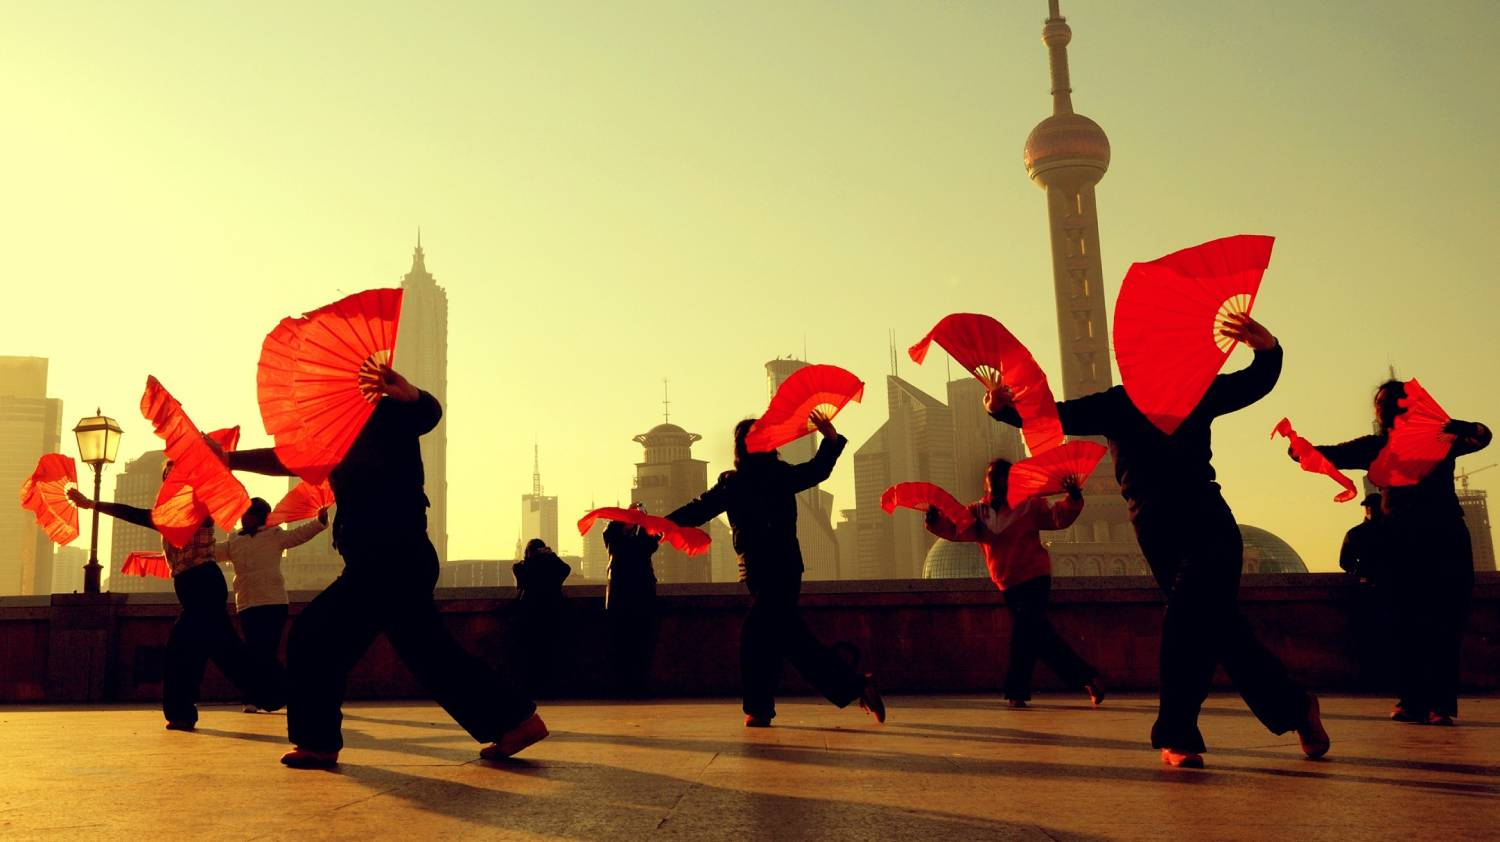 Shanghai - The Best Places To Visit In China